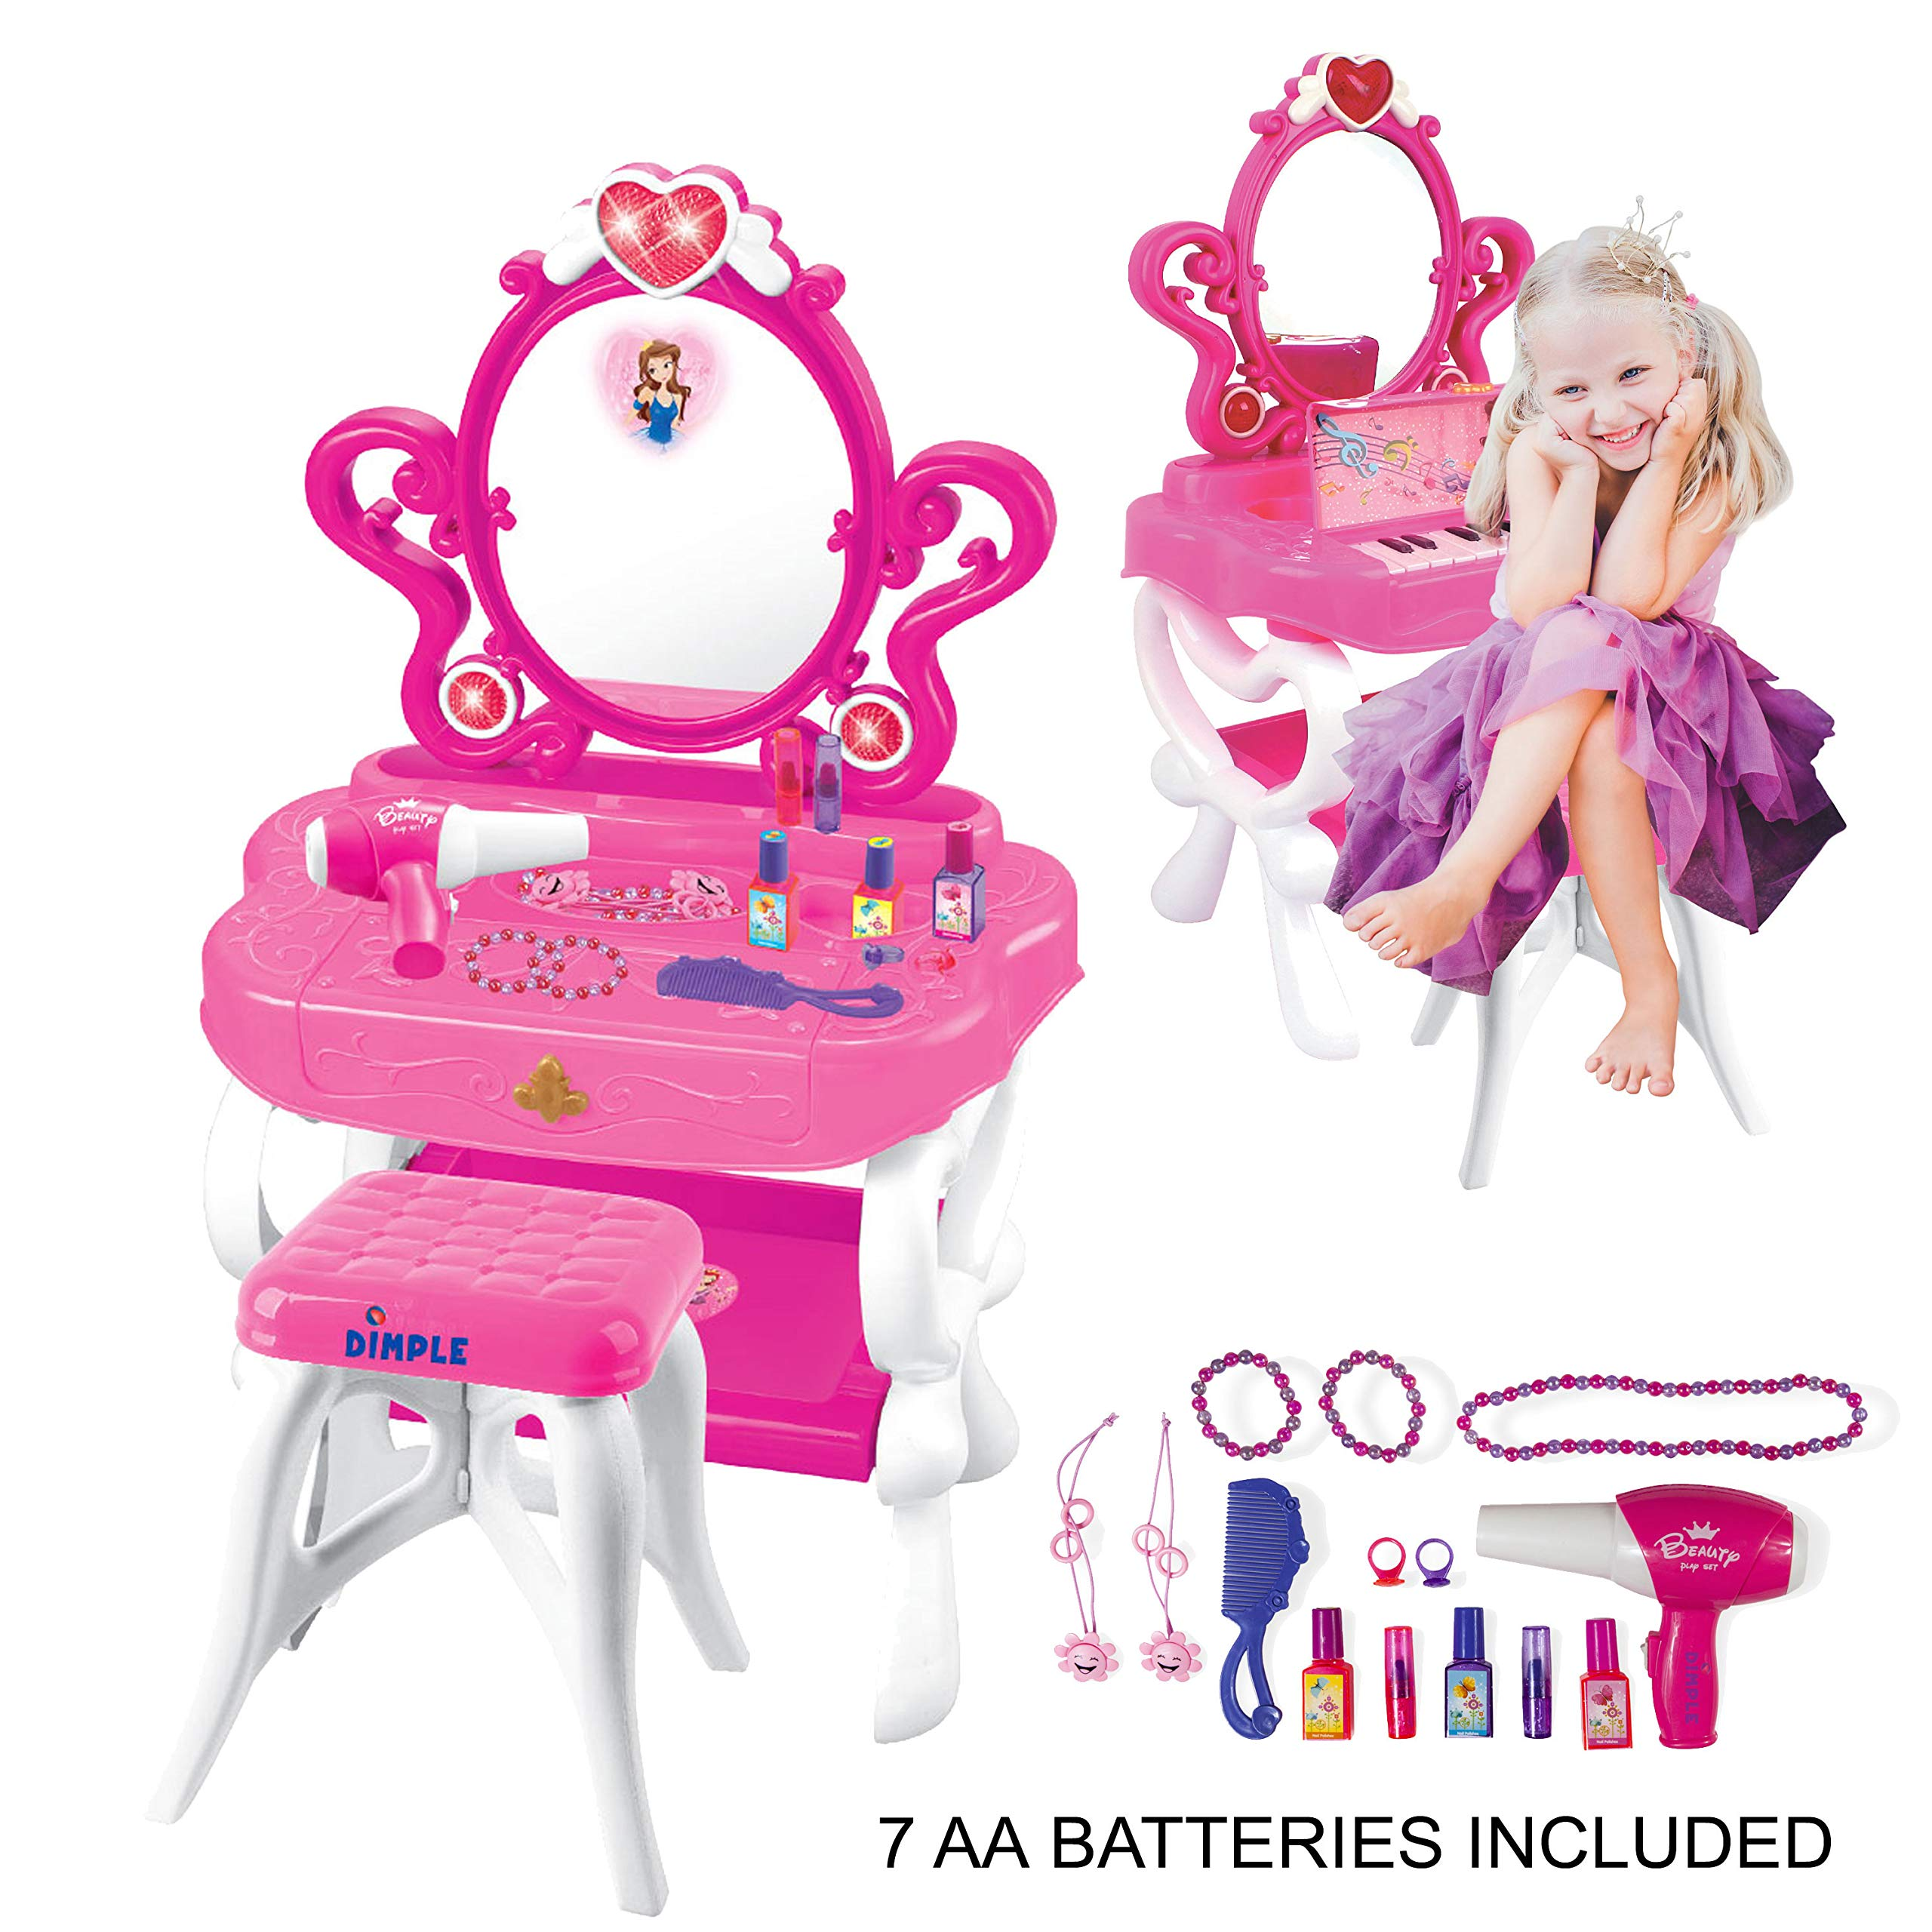 2-in-1 Musical Piano Vanity Set Girls Toy Makeup Accessories with Working Piano & Flashing Lights, Big Mirror, Pretend Cosmetics, Hair Dryer – Princess Image Appears in Mirror, 7 AA Batteries Included